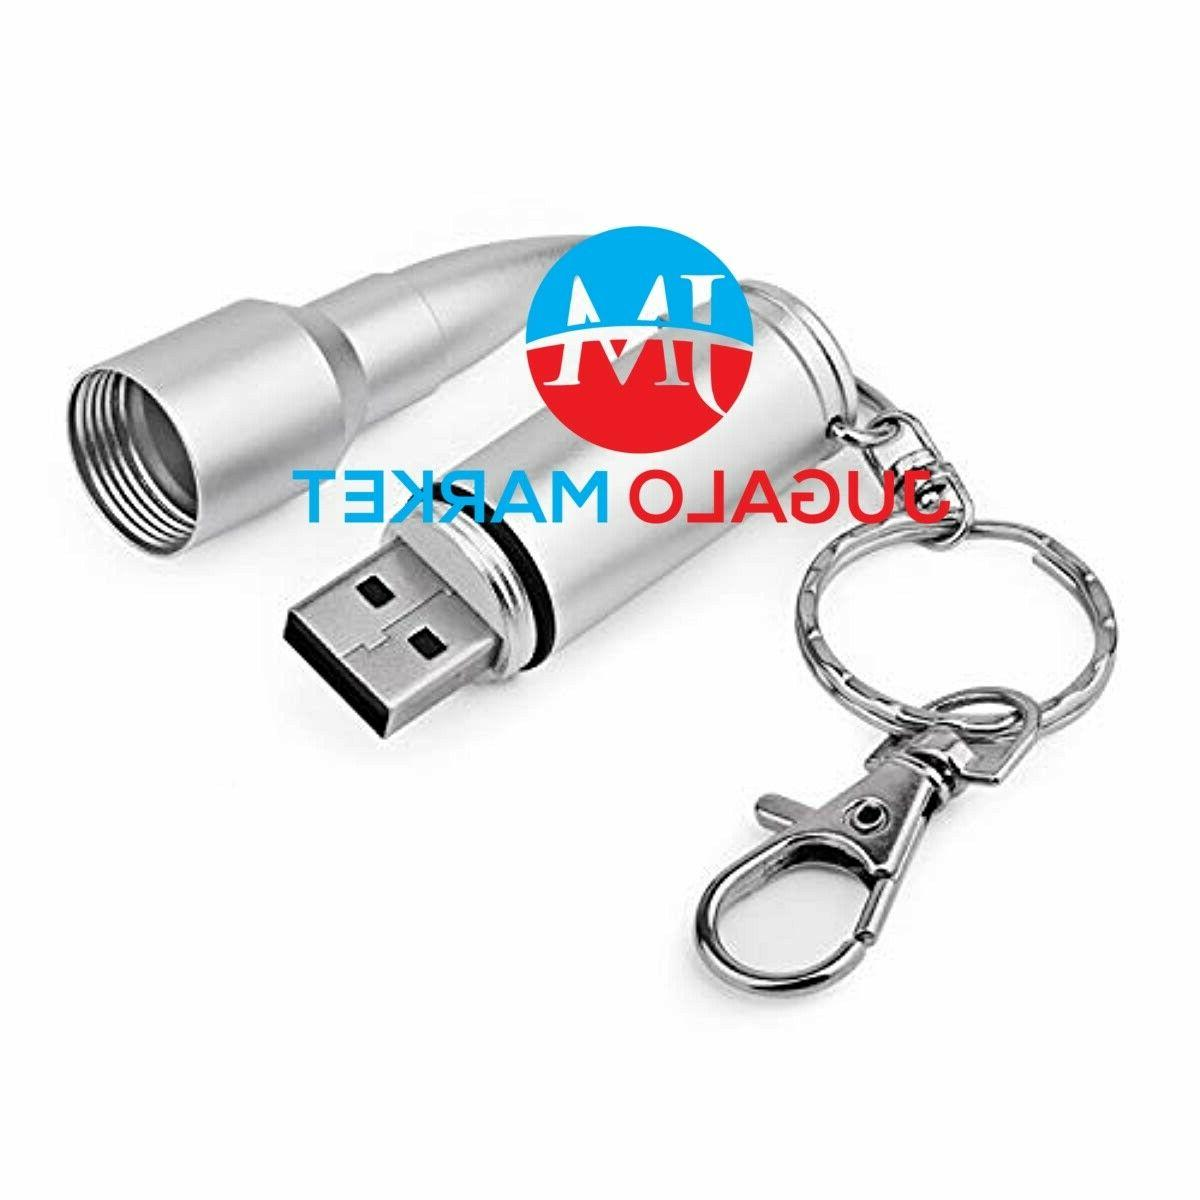 Flash Drive Pen Drive Key